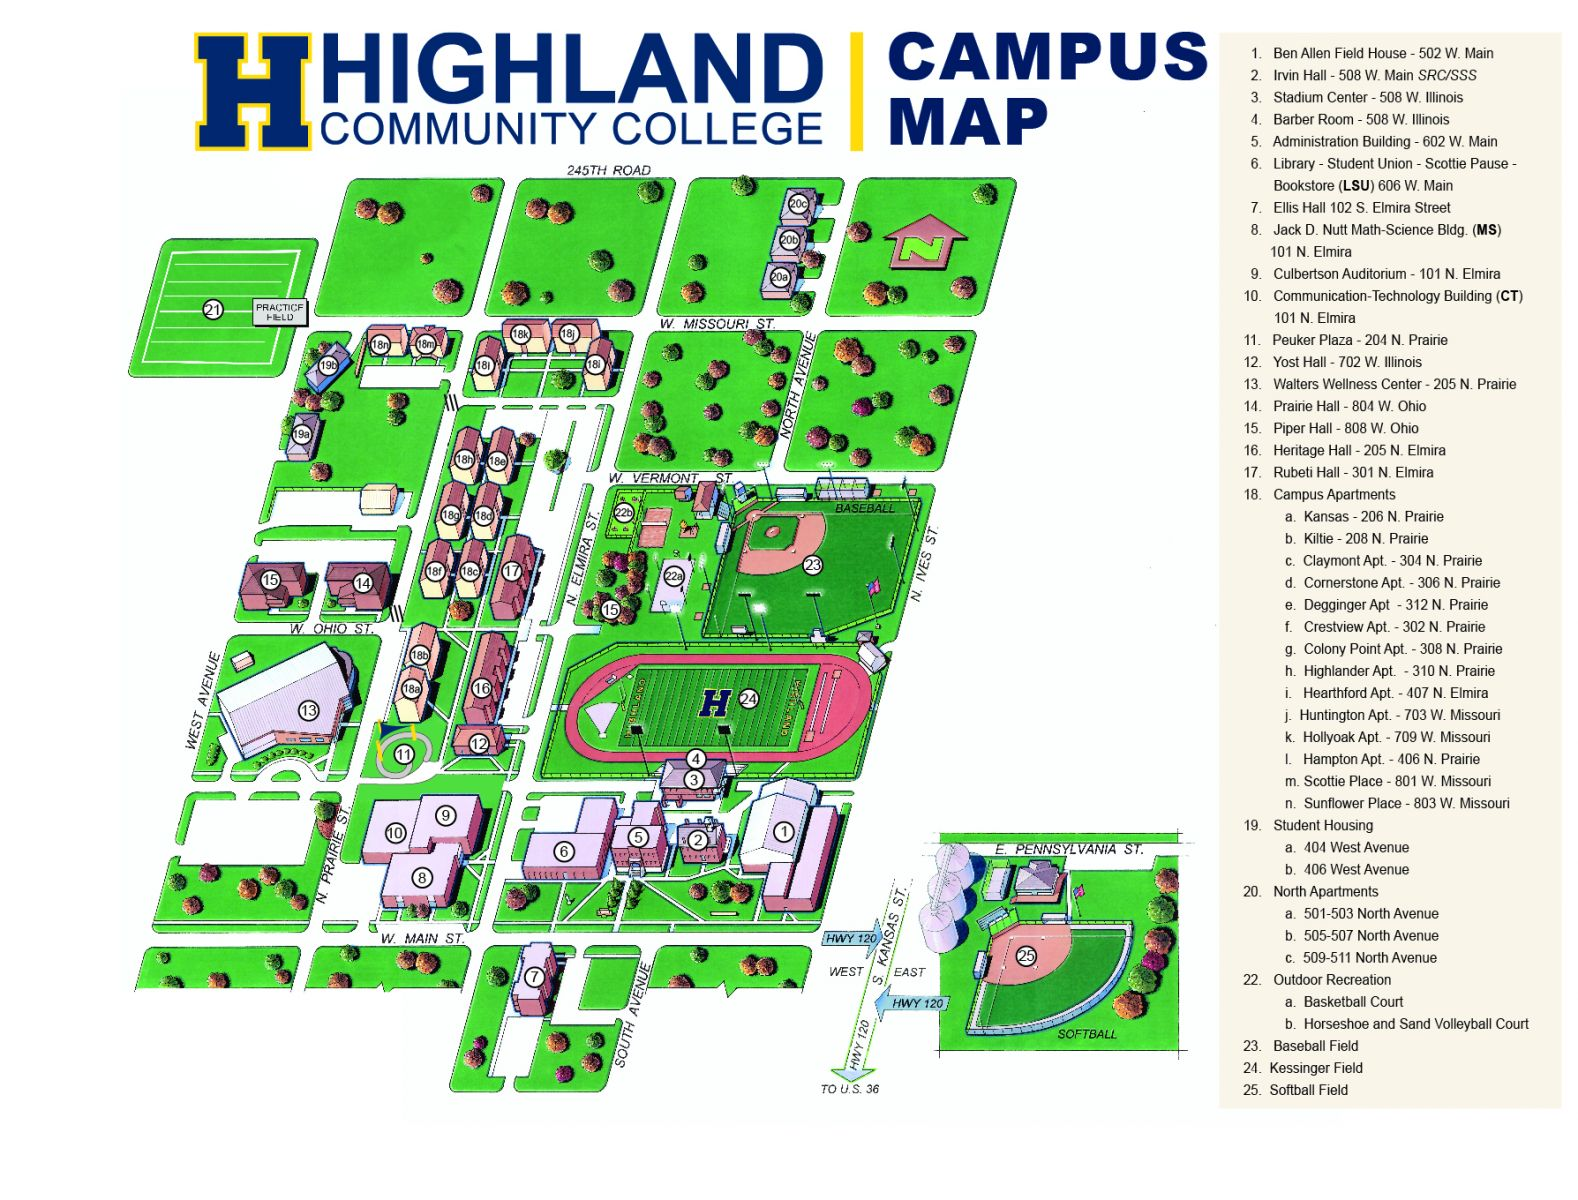 Highland Community College | My HCC | Campus Map Campus Map on network security toolkit, john the ripper, metasploit project,